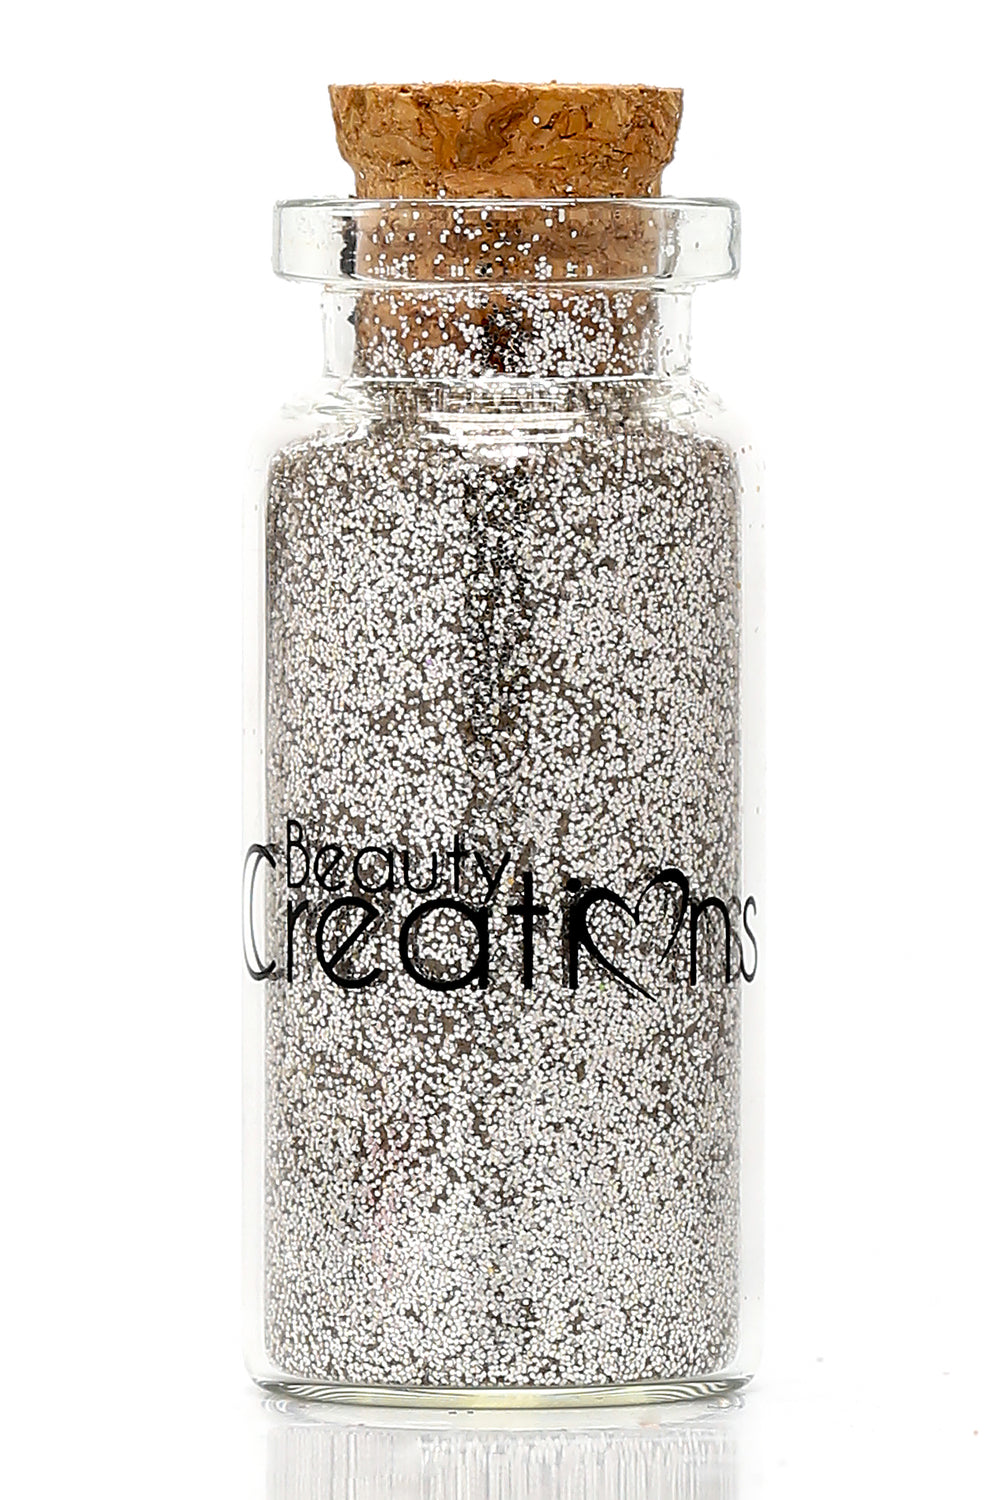 Beauty Creations Loose Glitter - Silver Dust